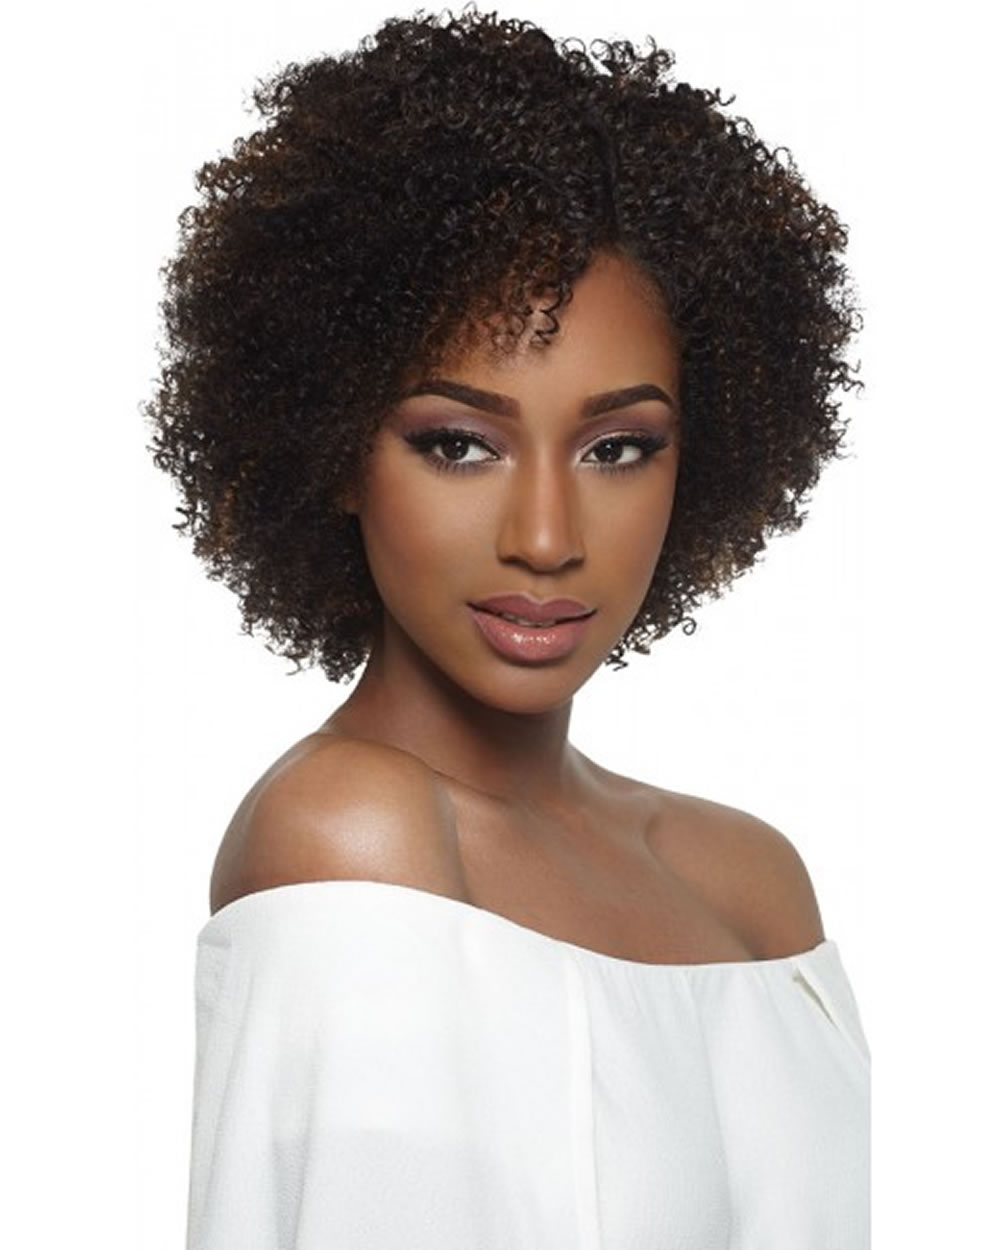 Short Natural Hairstyles 2019 Are The Most Popular Trends The Last